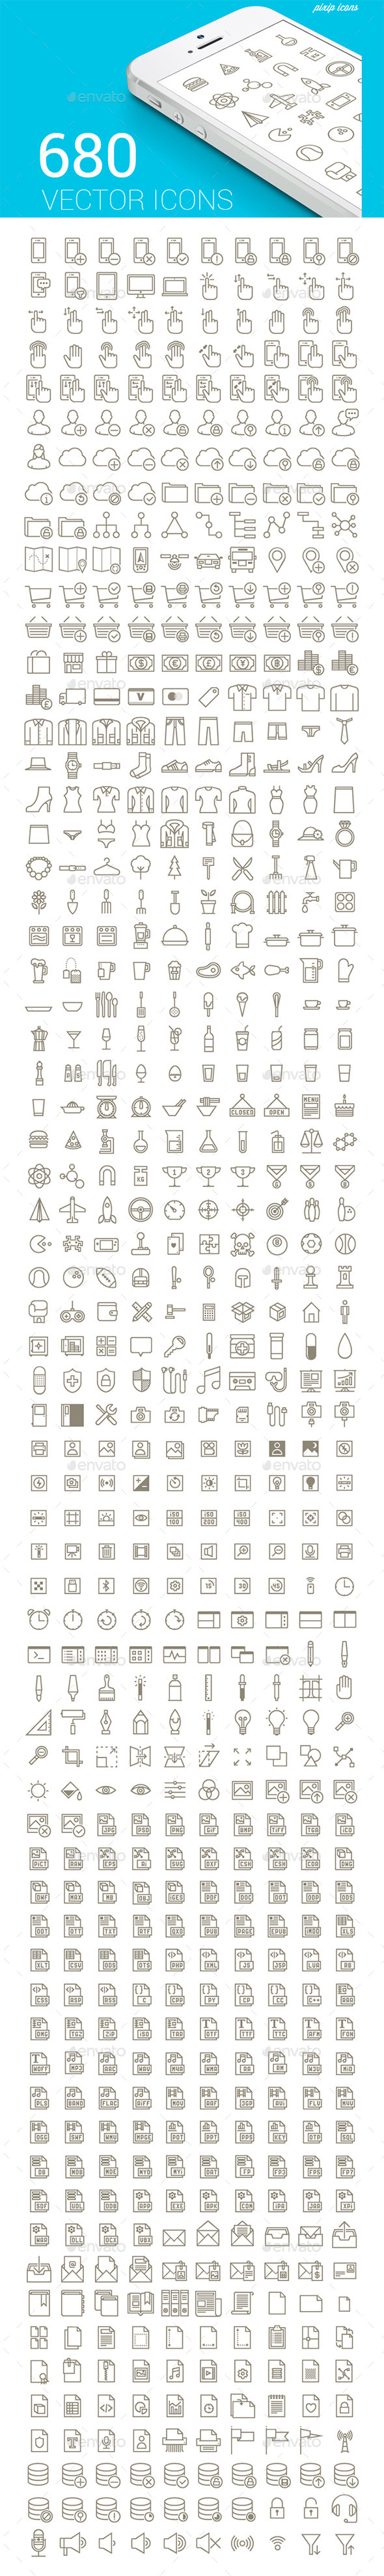 680 Vector Stroke Icons